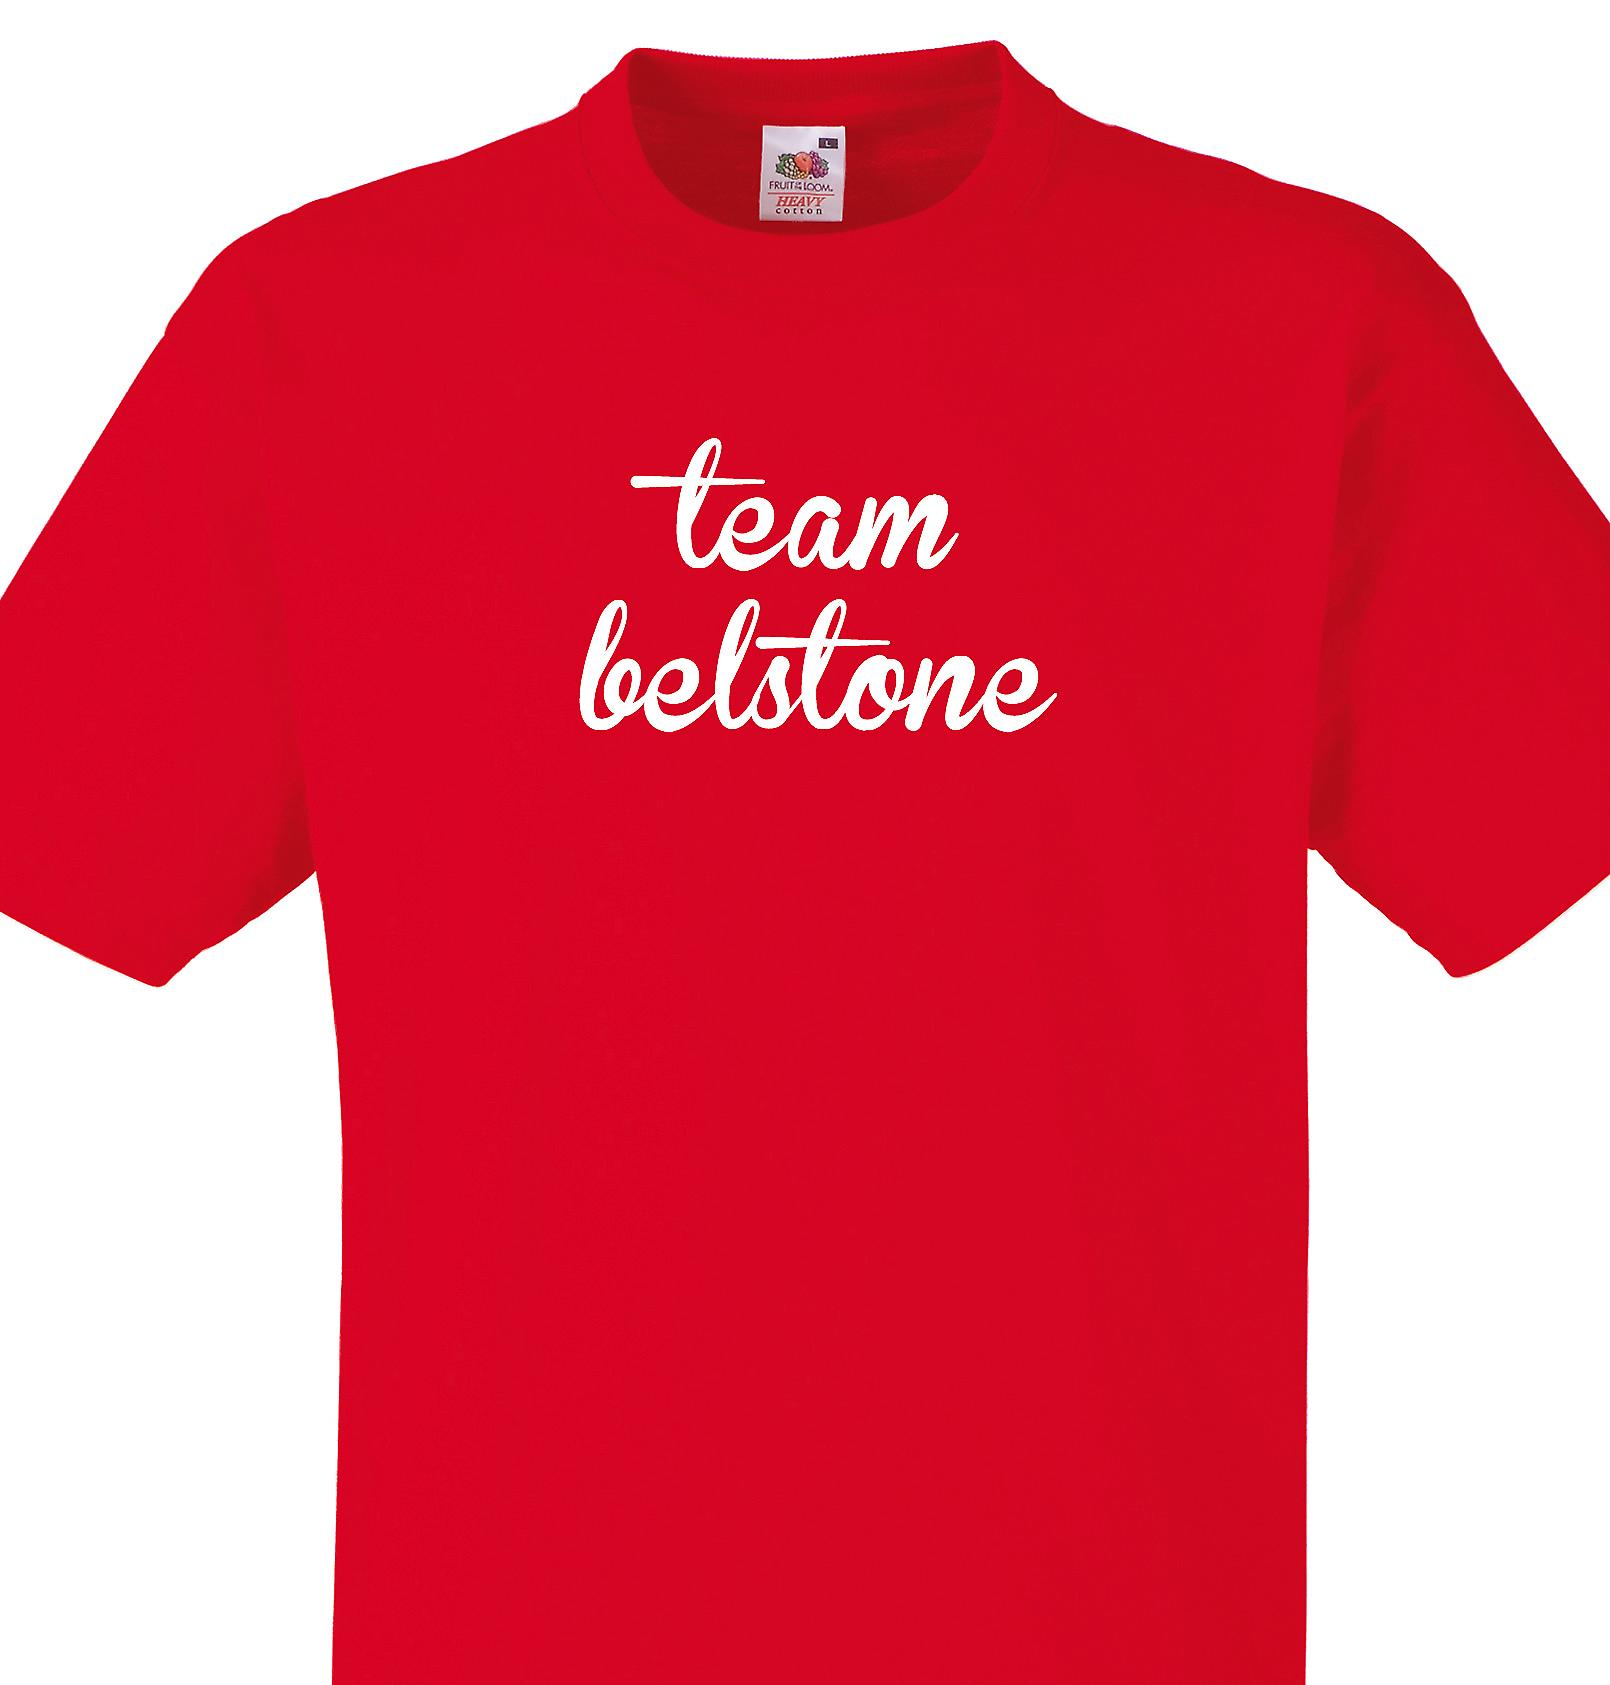 Team Belstone Red T shirt